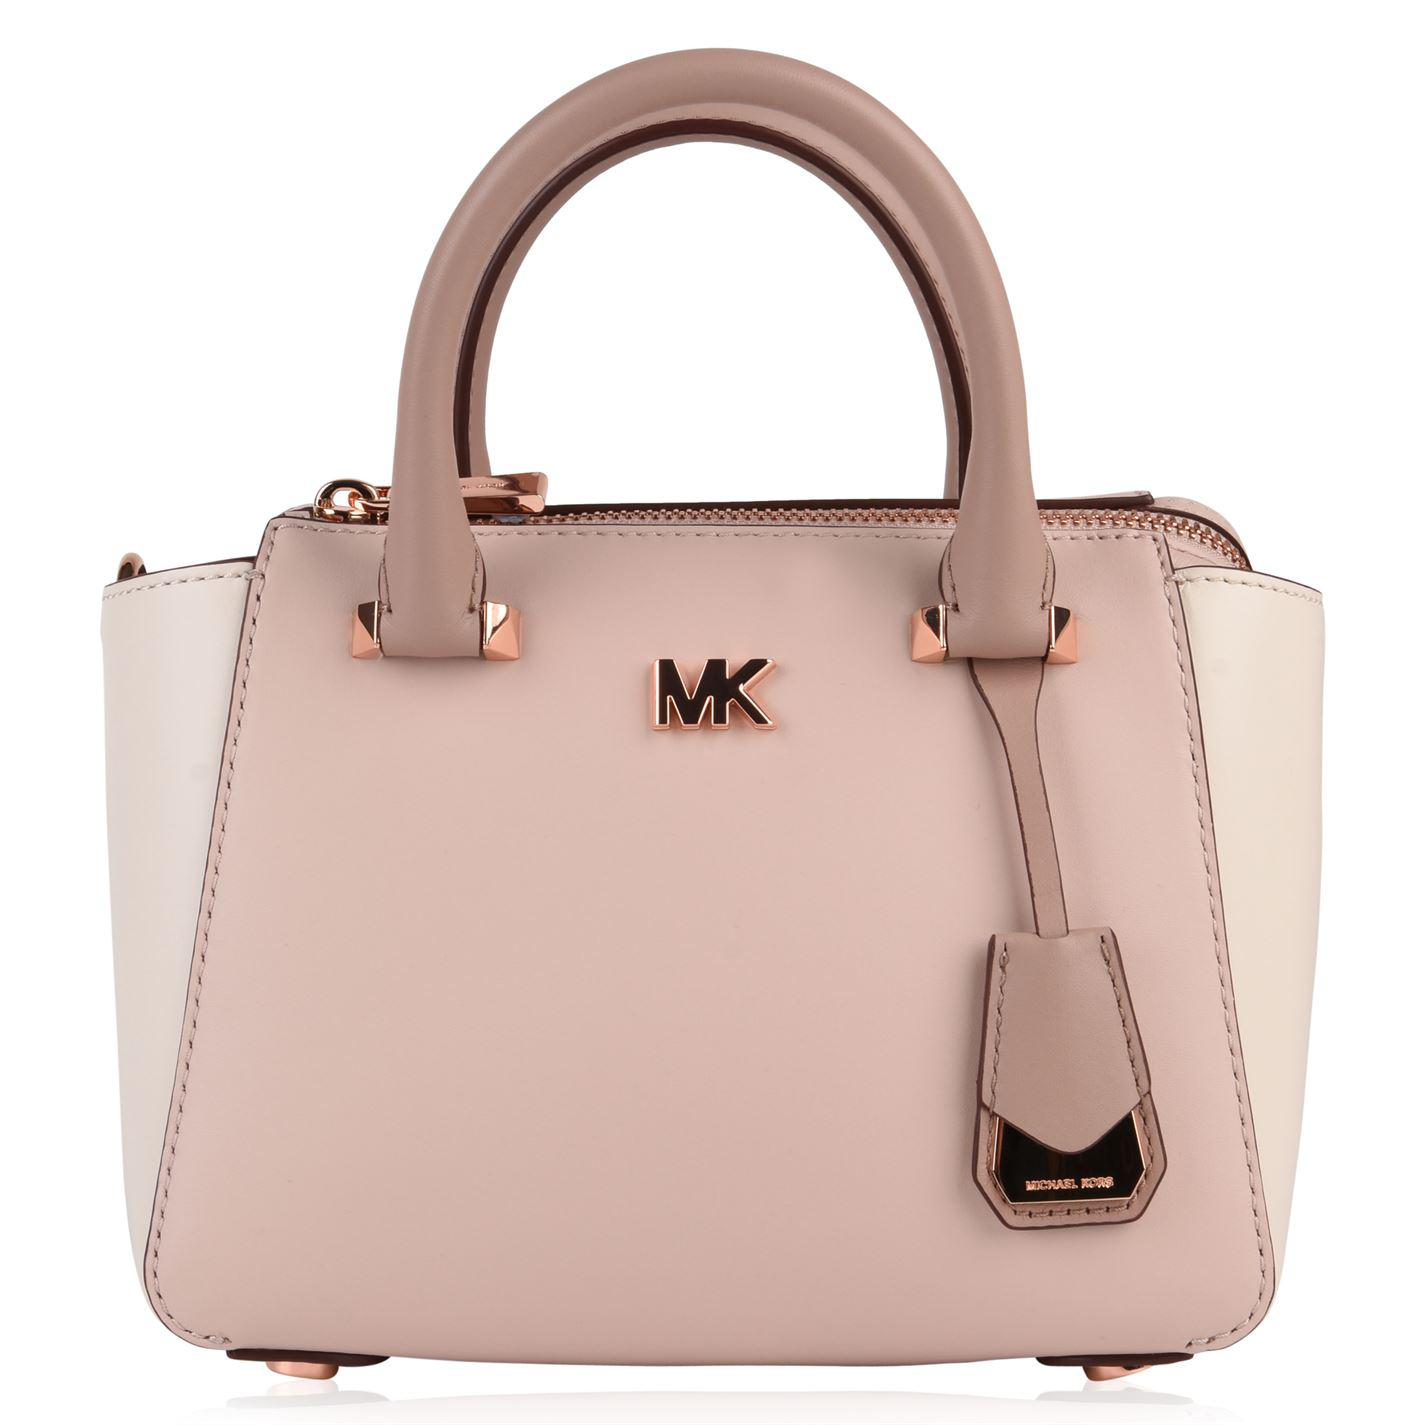 6c106fc786 ... greece lyst michael michael kors mk motto messenger bag in pink 15f50  7f19f